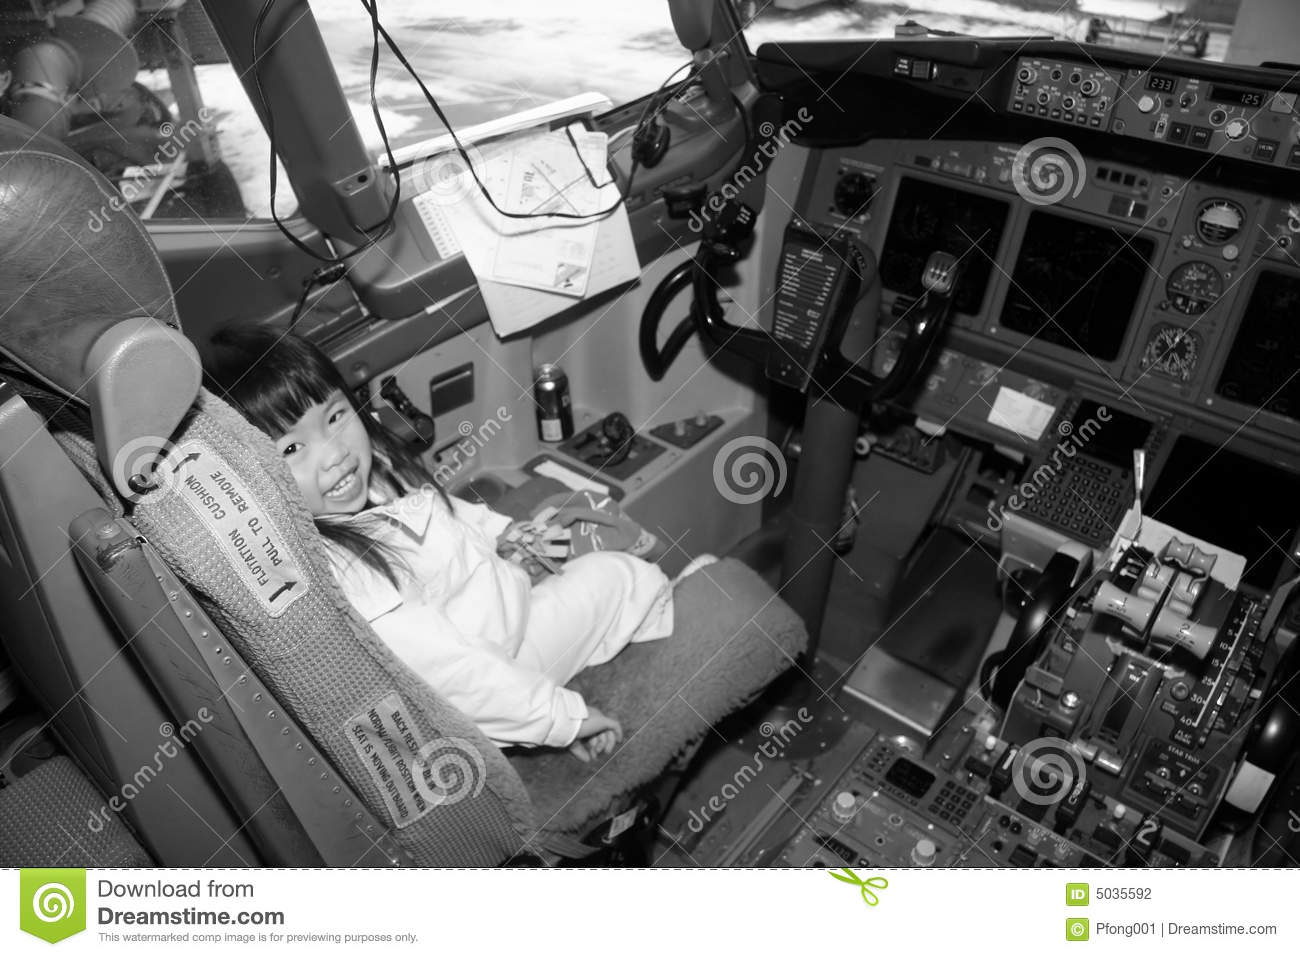 Preschooler in Airplane Cockpit